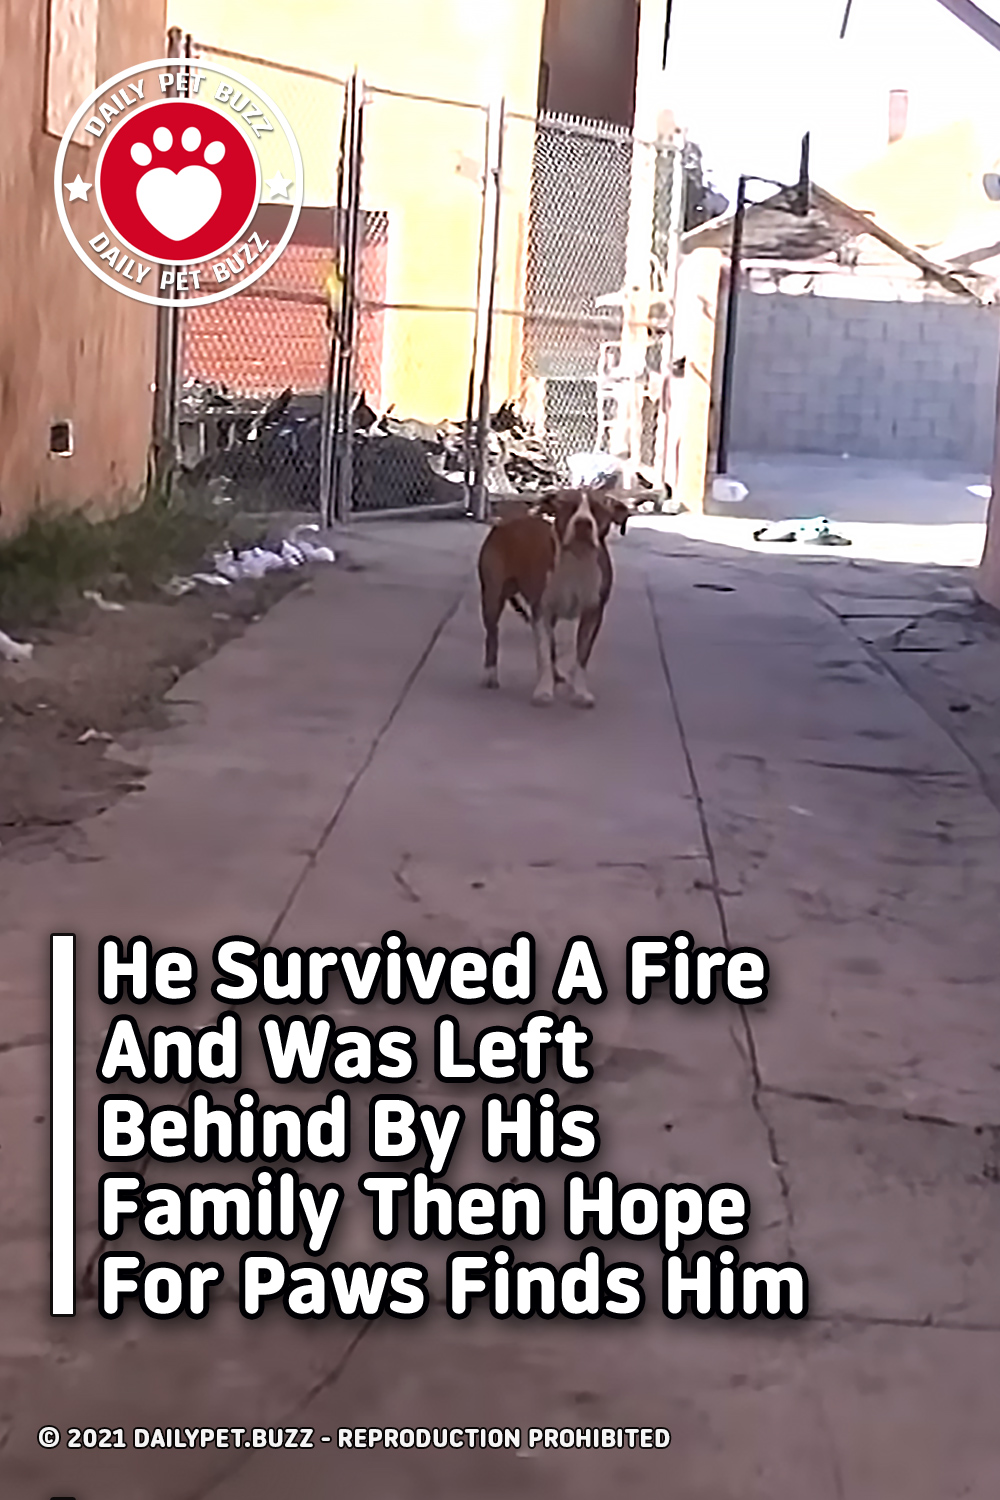 He Survived A Fire And Was Left Behind By His Family Then Hope For Paws Finds Him